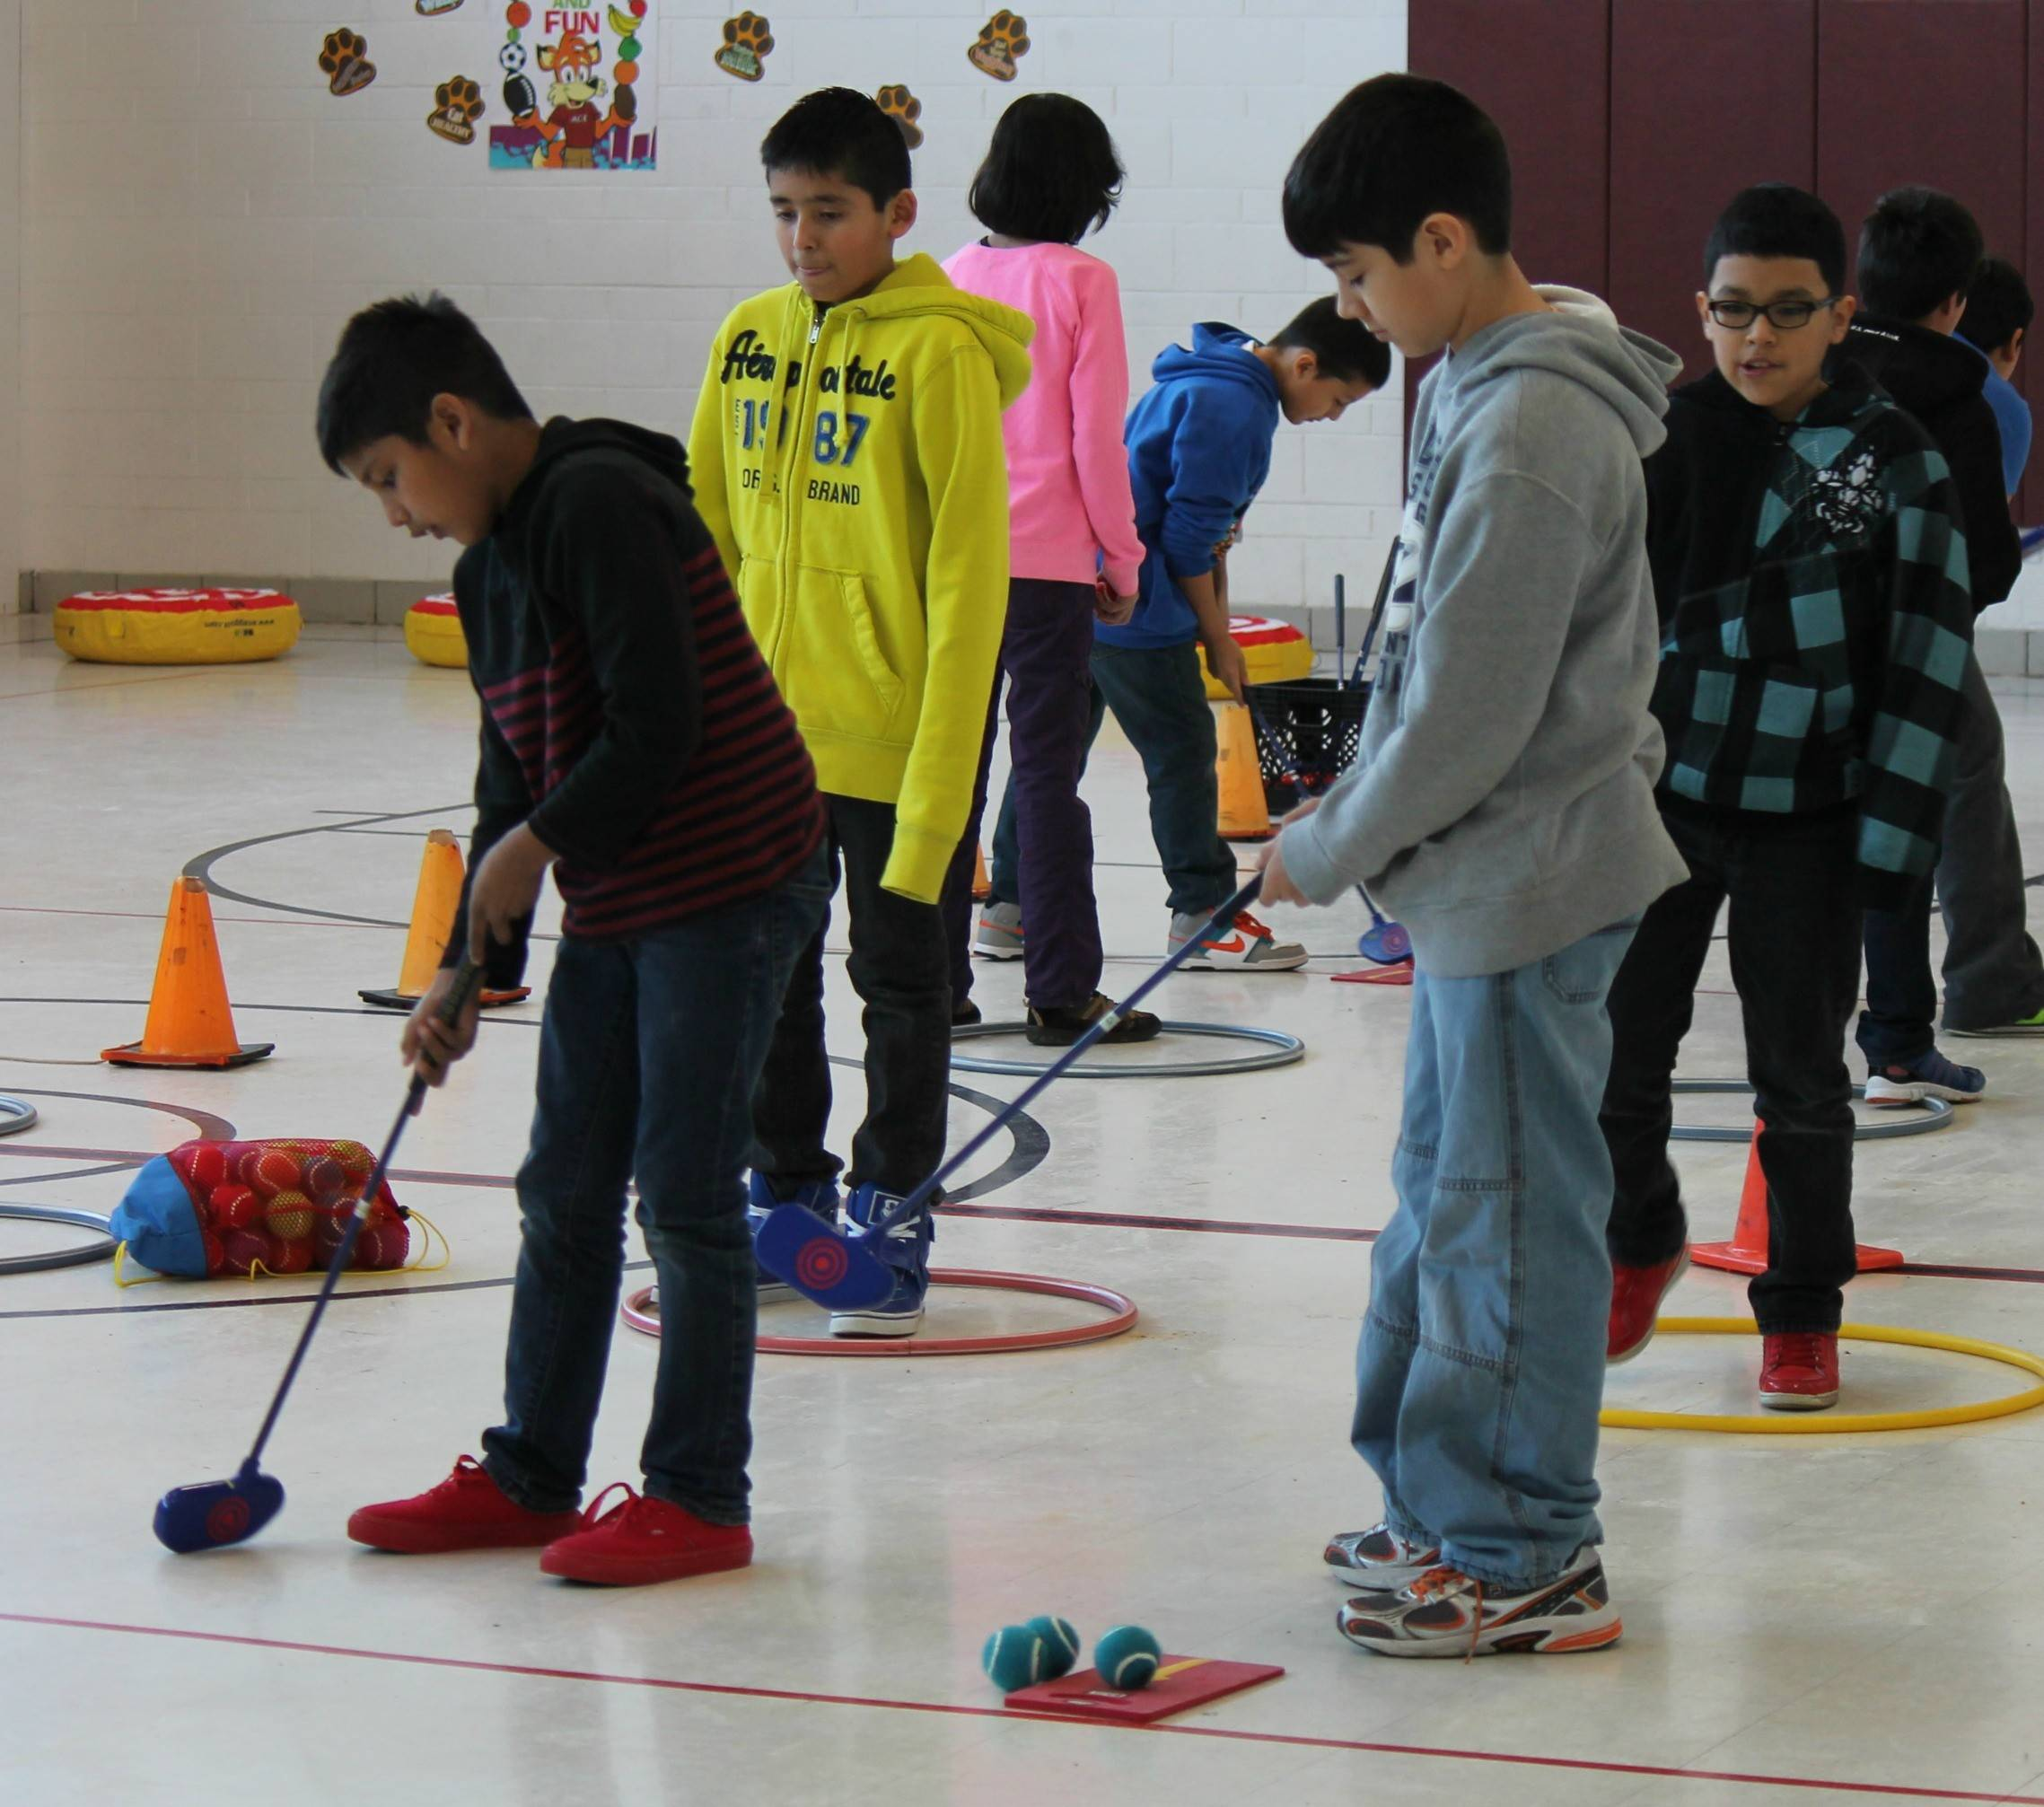 Elementary students in West Chicago District 33 will learn basic golf skills along with character and health education as part of their physical education classes.